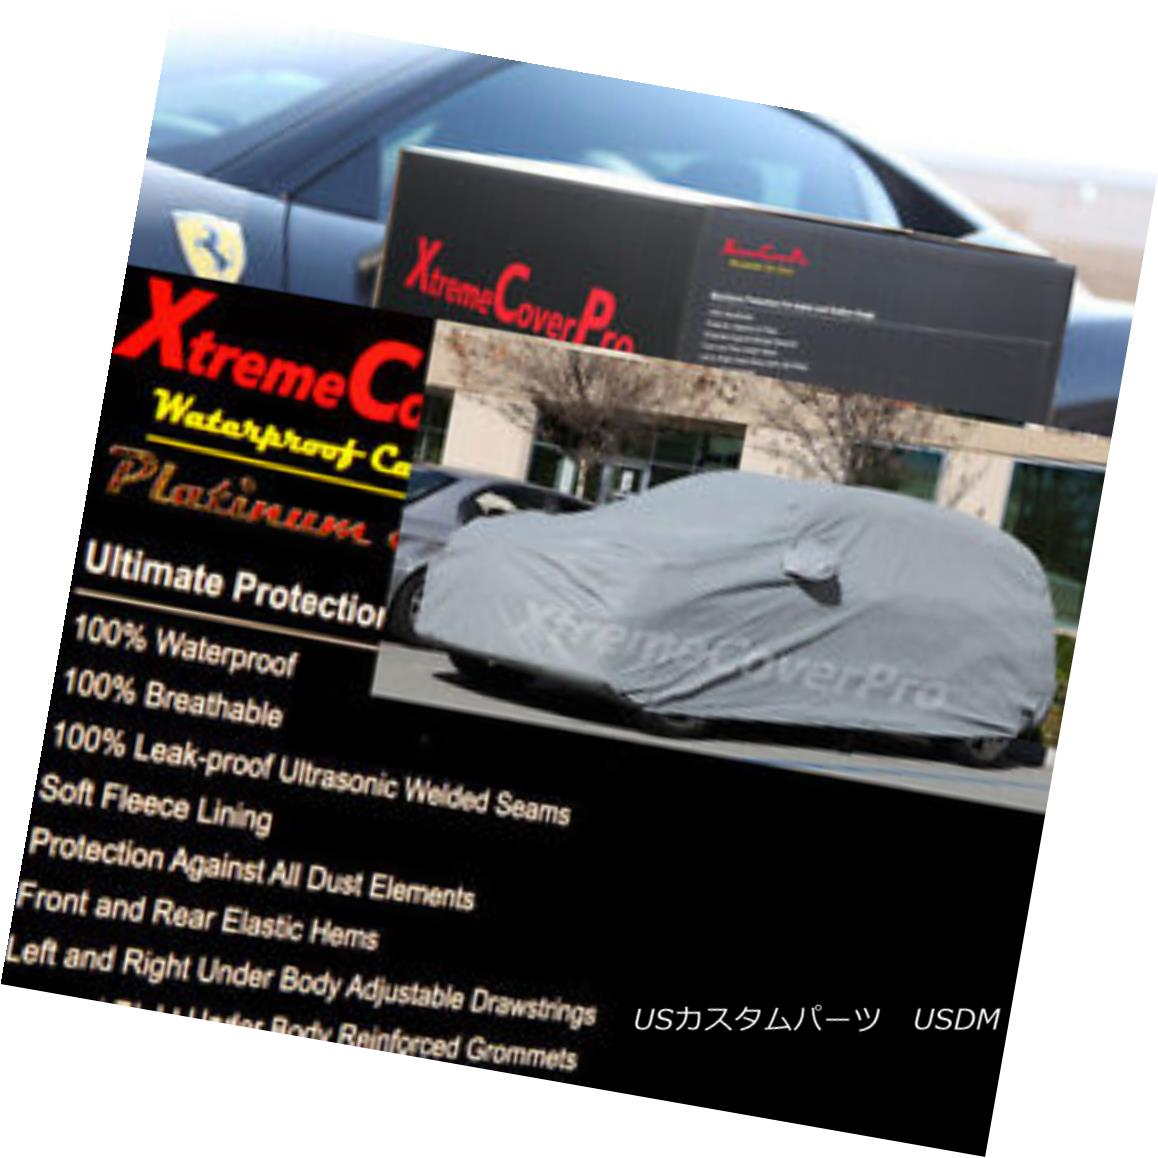 カーカバー 2014 MAZDA CX-9 Waterproof Car Cover w/ Mirror Pocket 2014 MAZDA CX-9ミラーポケット付防水カーカバー